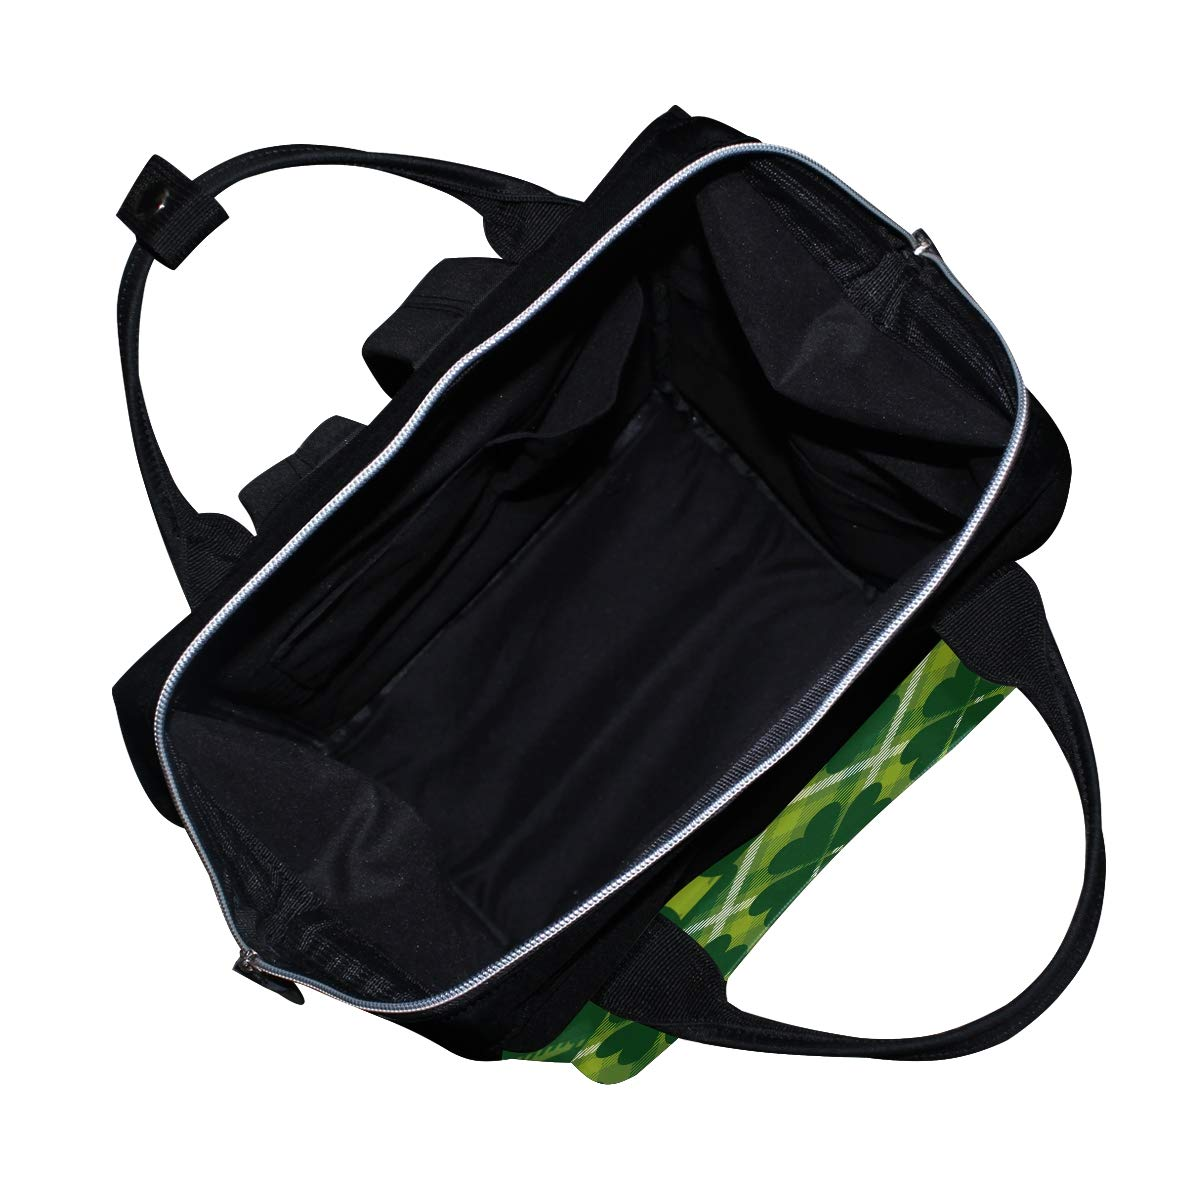 Diaper Bags Backpack Mummy Backpack with Clover Weed Tile Travel Laptop Daypack